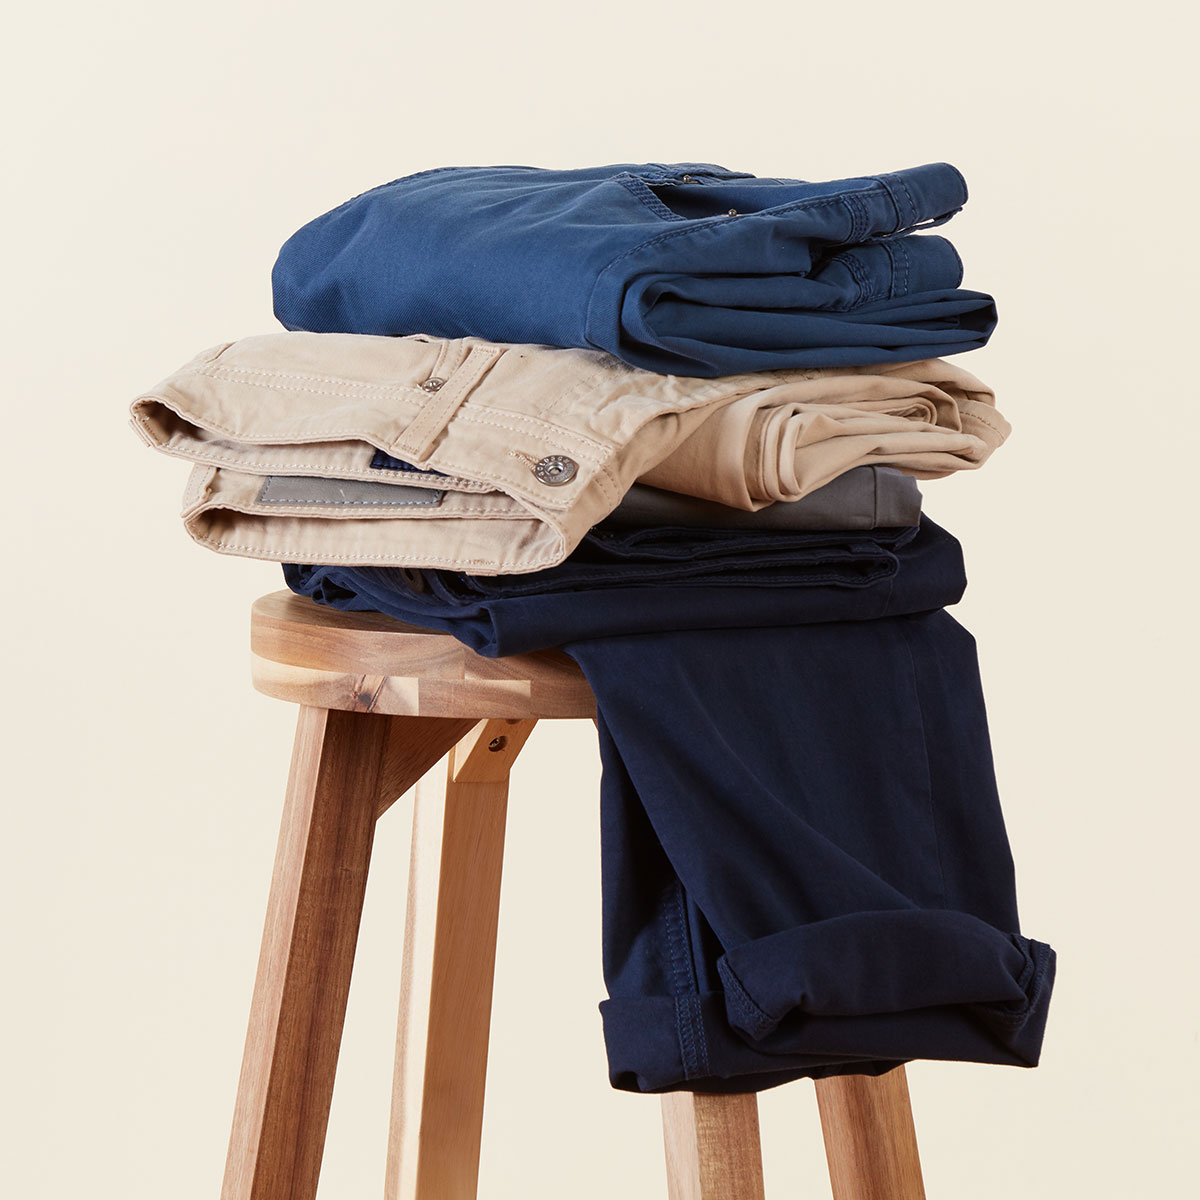 Men's 5-pocket twills